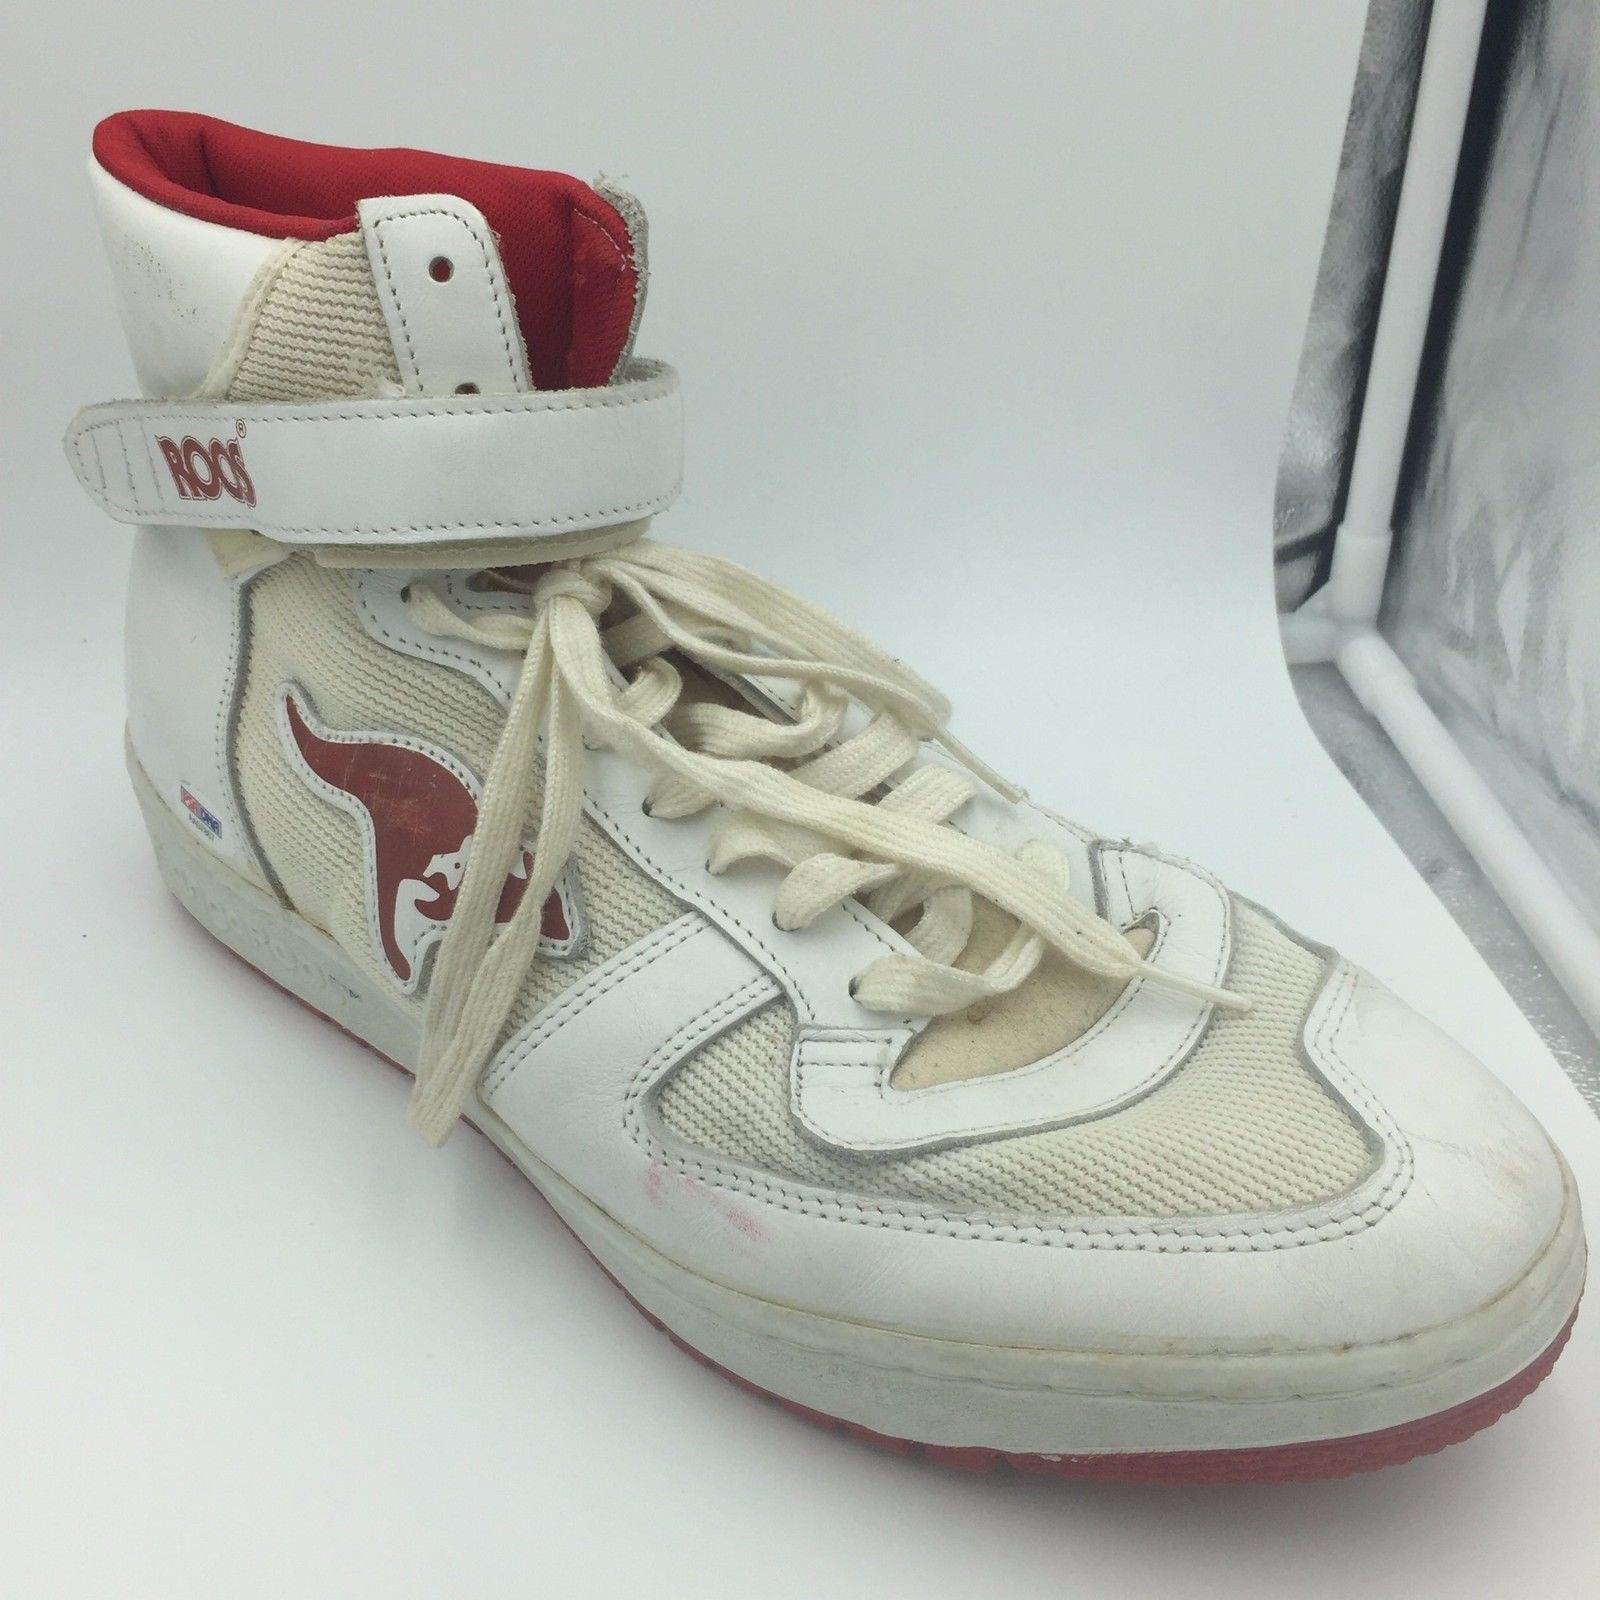 ce940b335c79 1980 s Clyde Drexler Signed Game Used Sneakers Shoes Pair With PSA ...